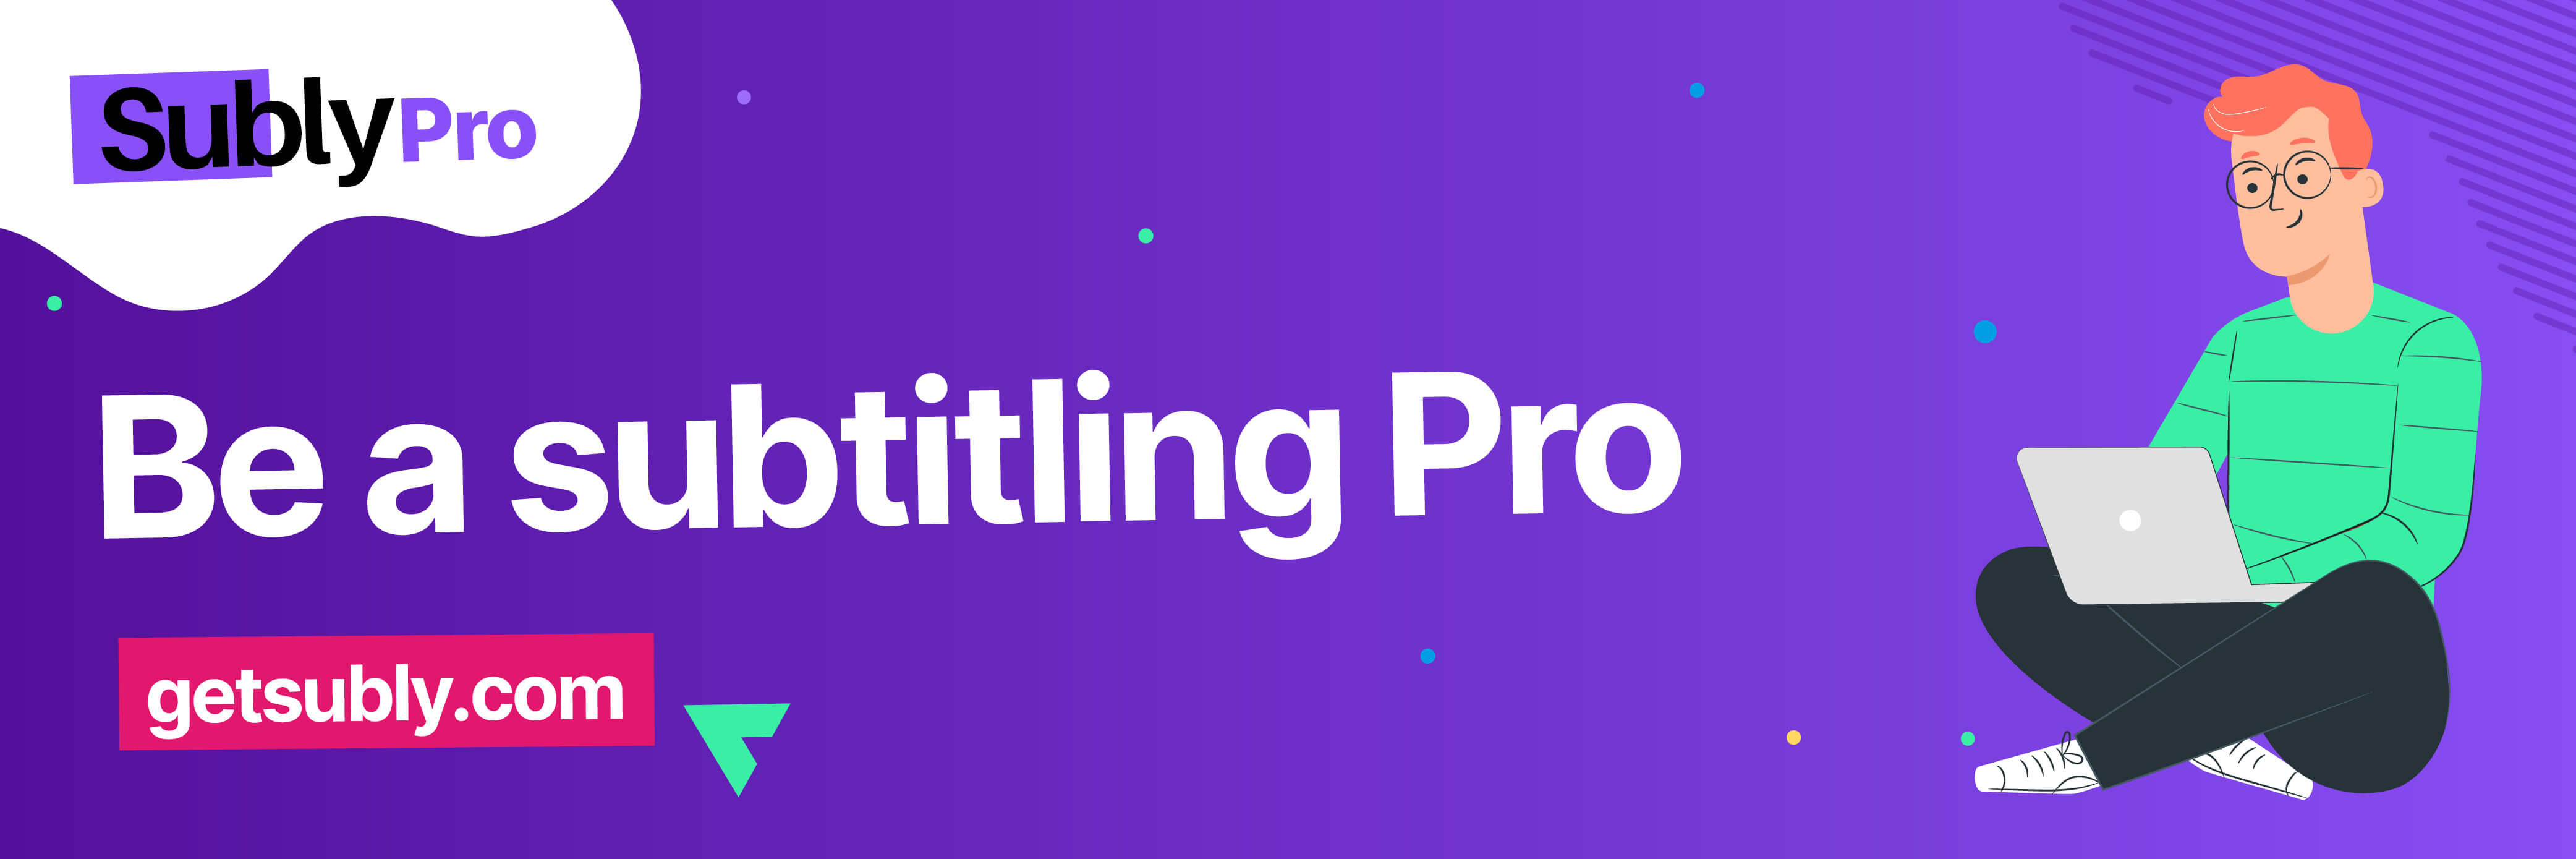 text on image become a subtitling pro with subly pro